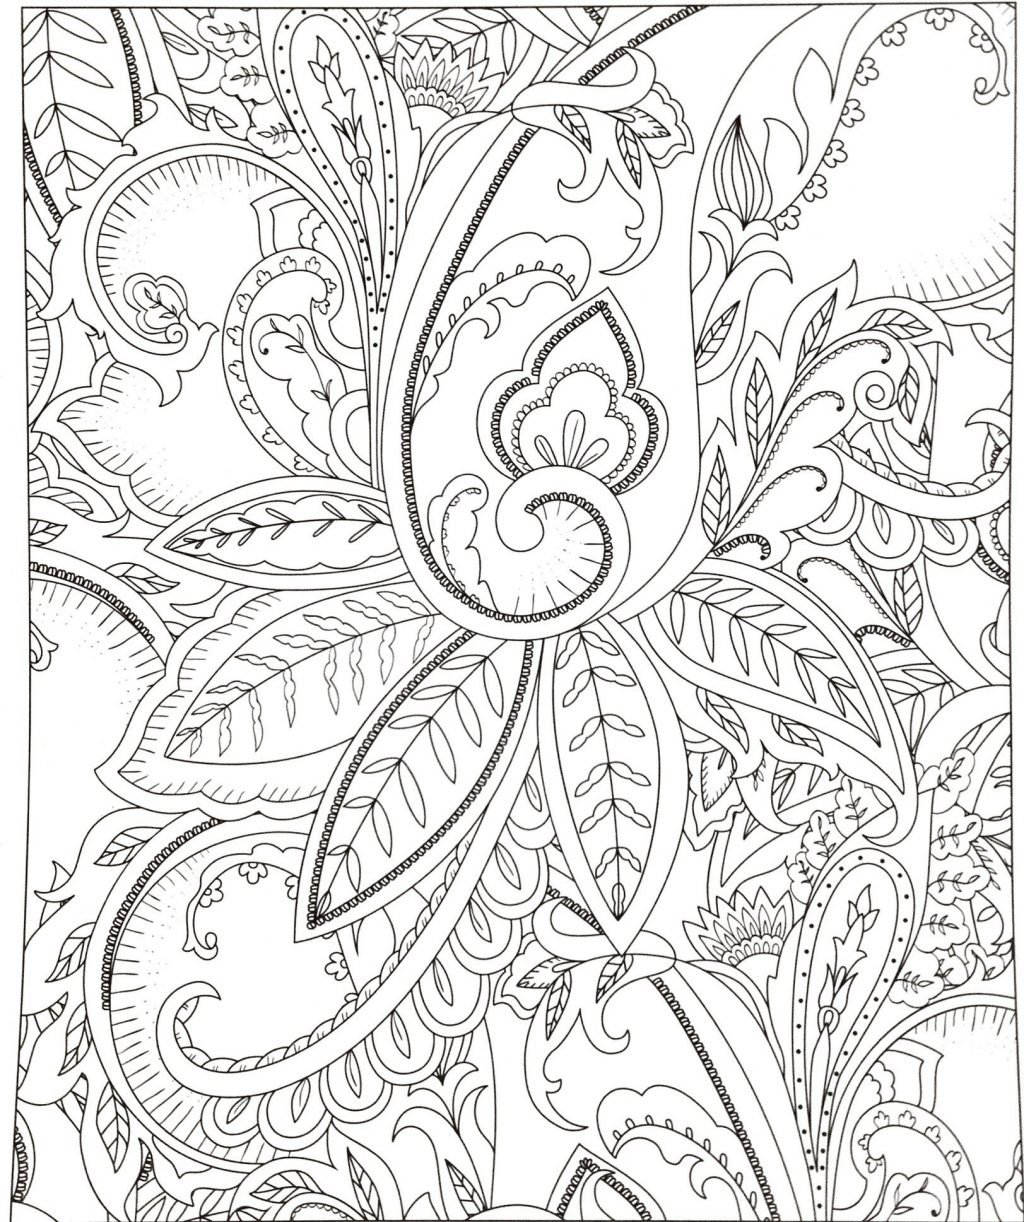 Coloring Page ~ Freee Coloring Pages Adults Only Swear Words New